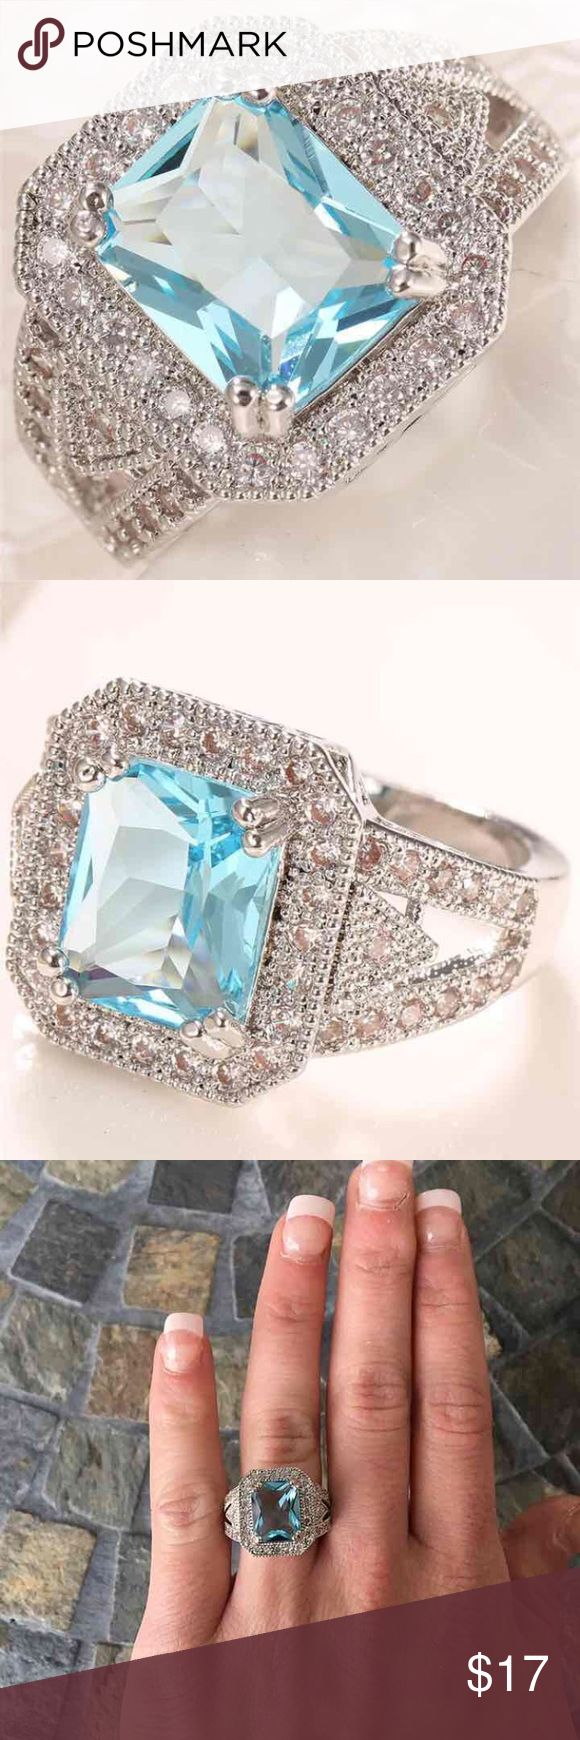 Emerald Aqua Halo Silver Engagement Ring Amazing sparkly ring! 3.7ct Aqua blue emerald cut center stone  Emerald shape halo setting  Pretty split band with a triangle design in the middle  White stones on all shanks of the band Silver plated  FIRM PRICE/NO TRADES❗ Jewelry Rings